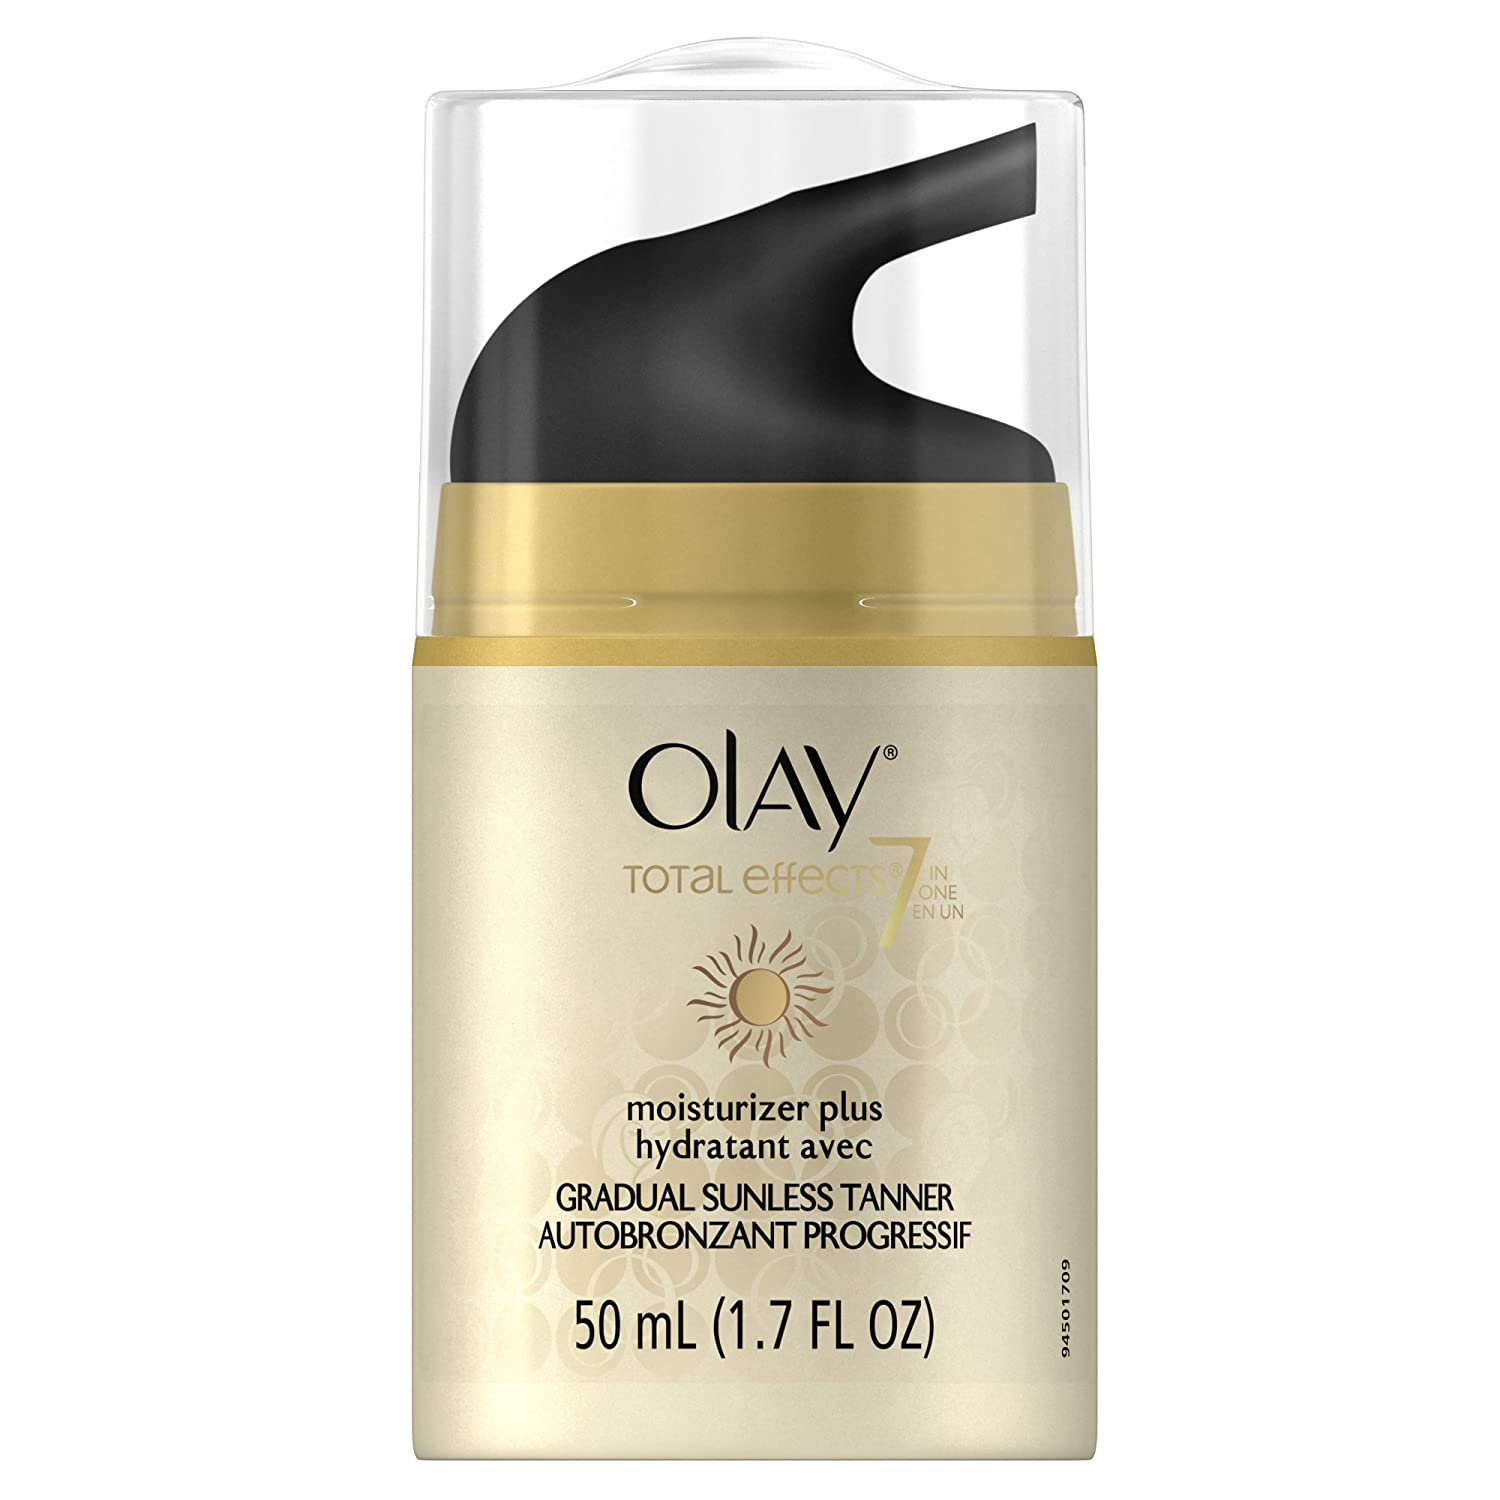 Olay Total Effects 7 in 1 Moisturizer + Treatment Duo 40 mL packaging may vary NA